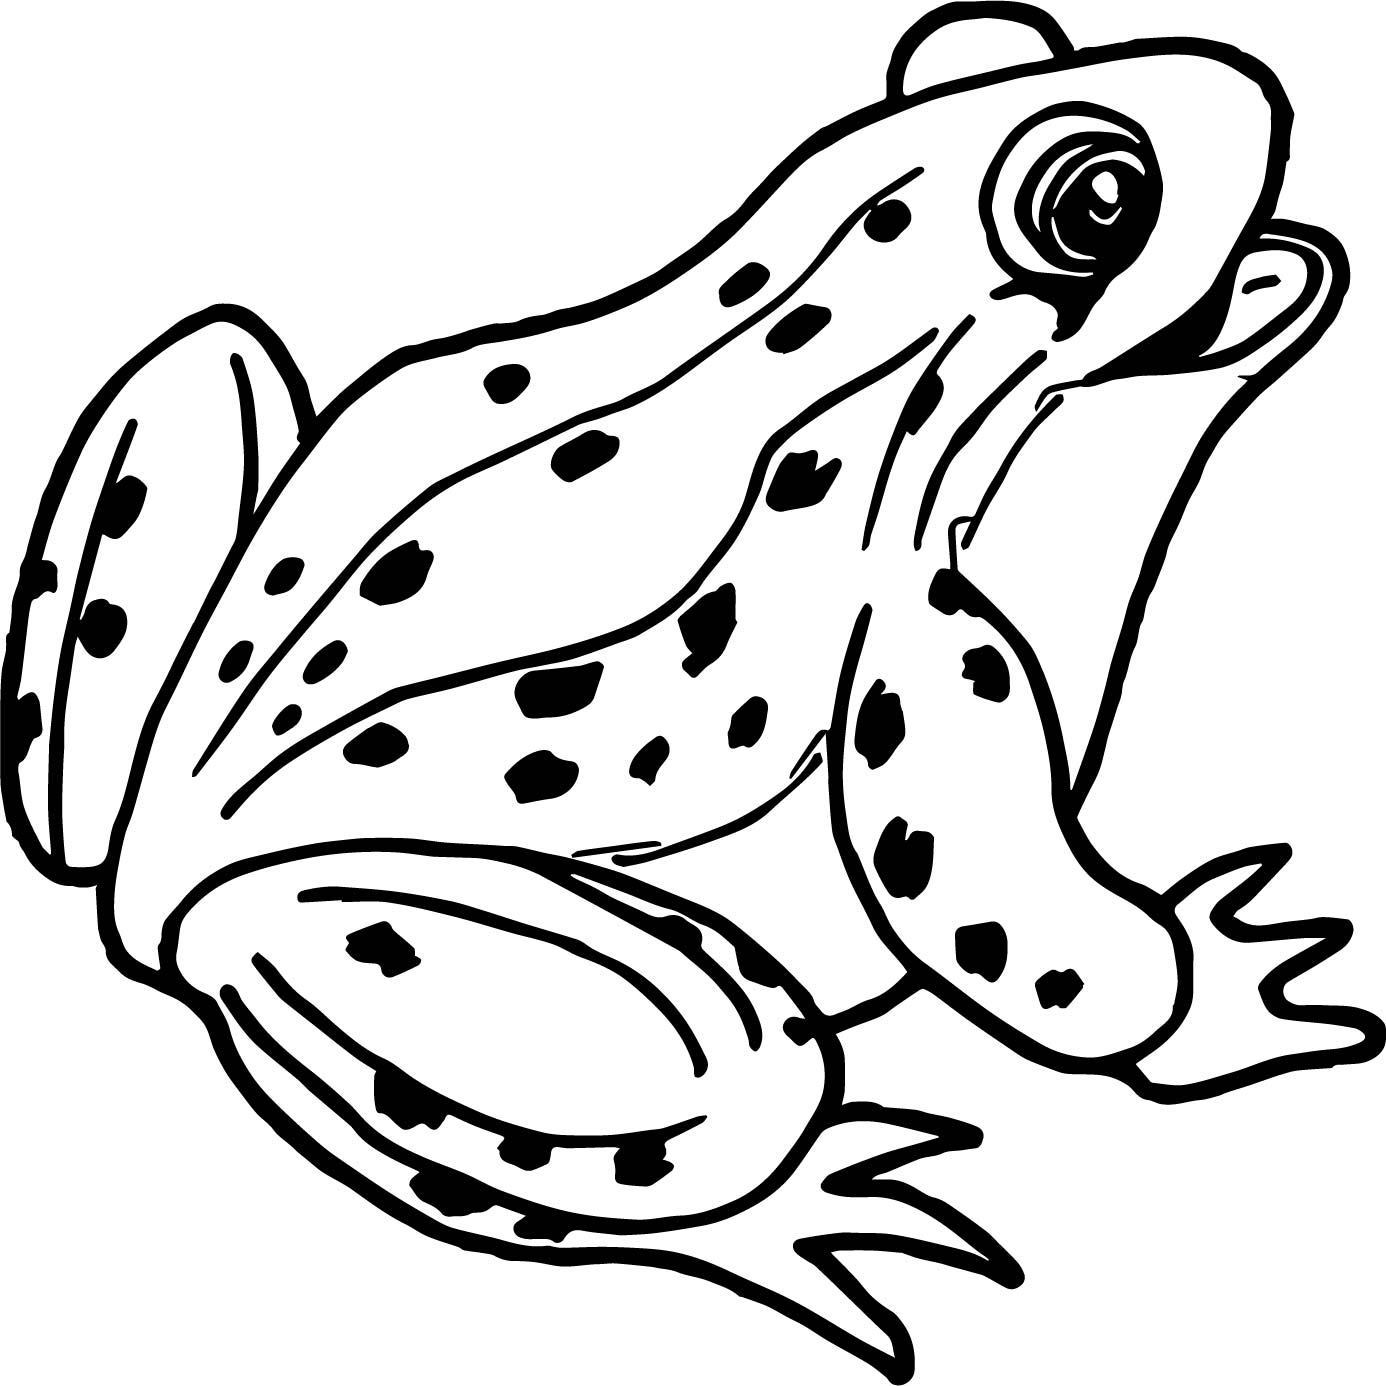 frog coloring pages - frog coloring page